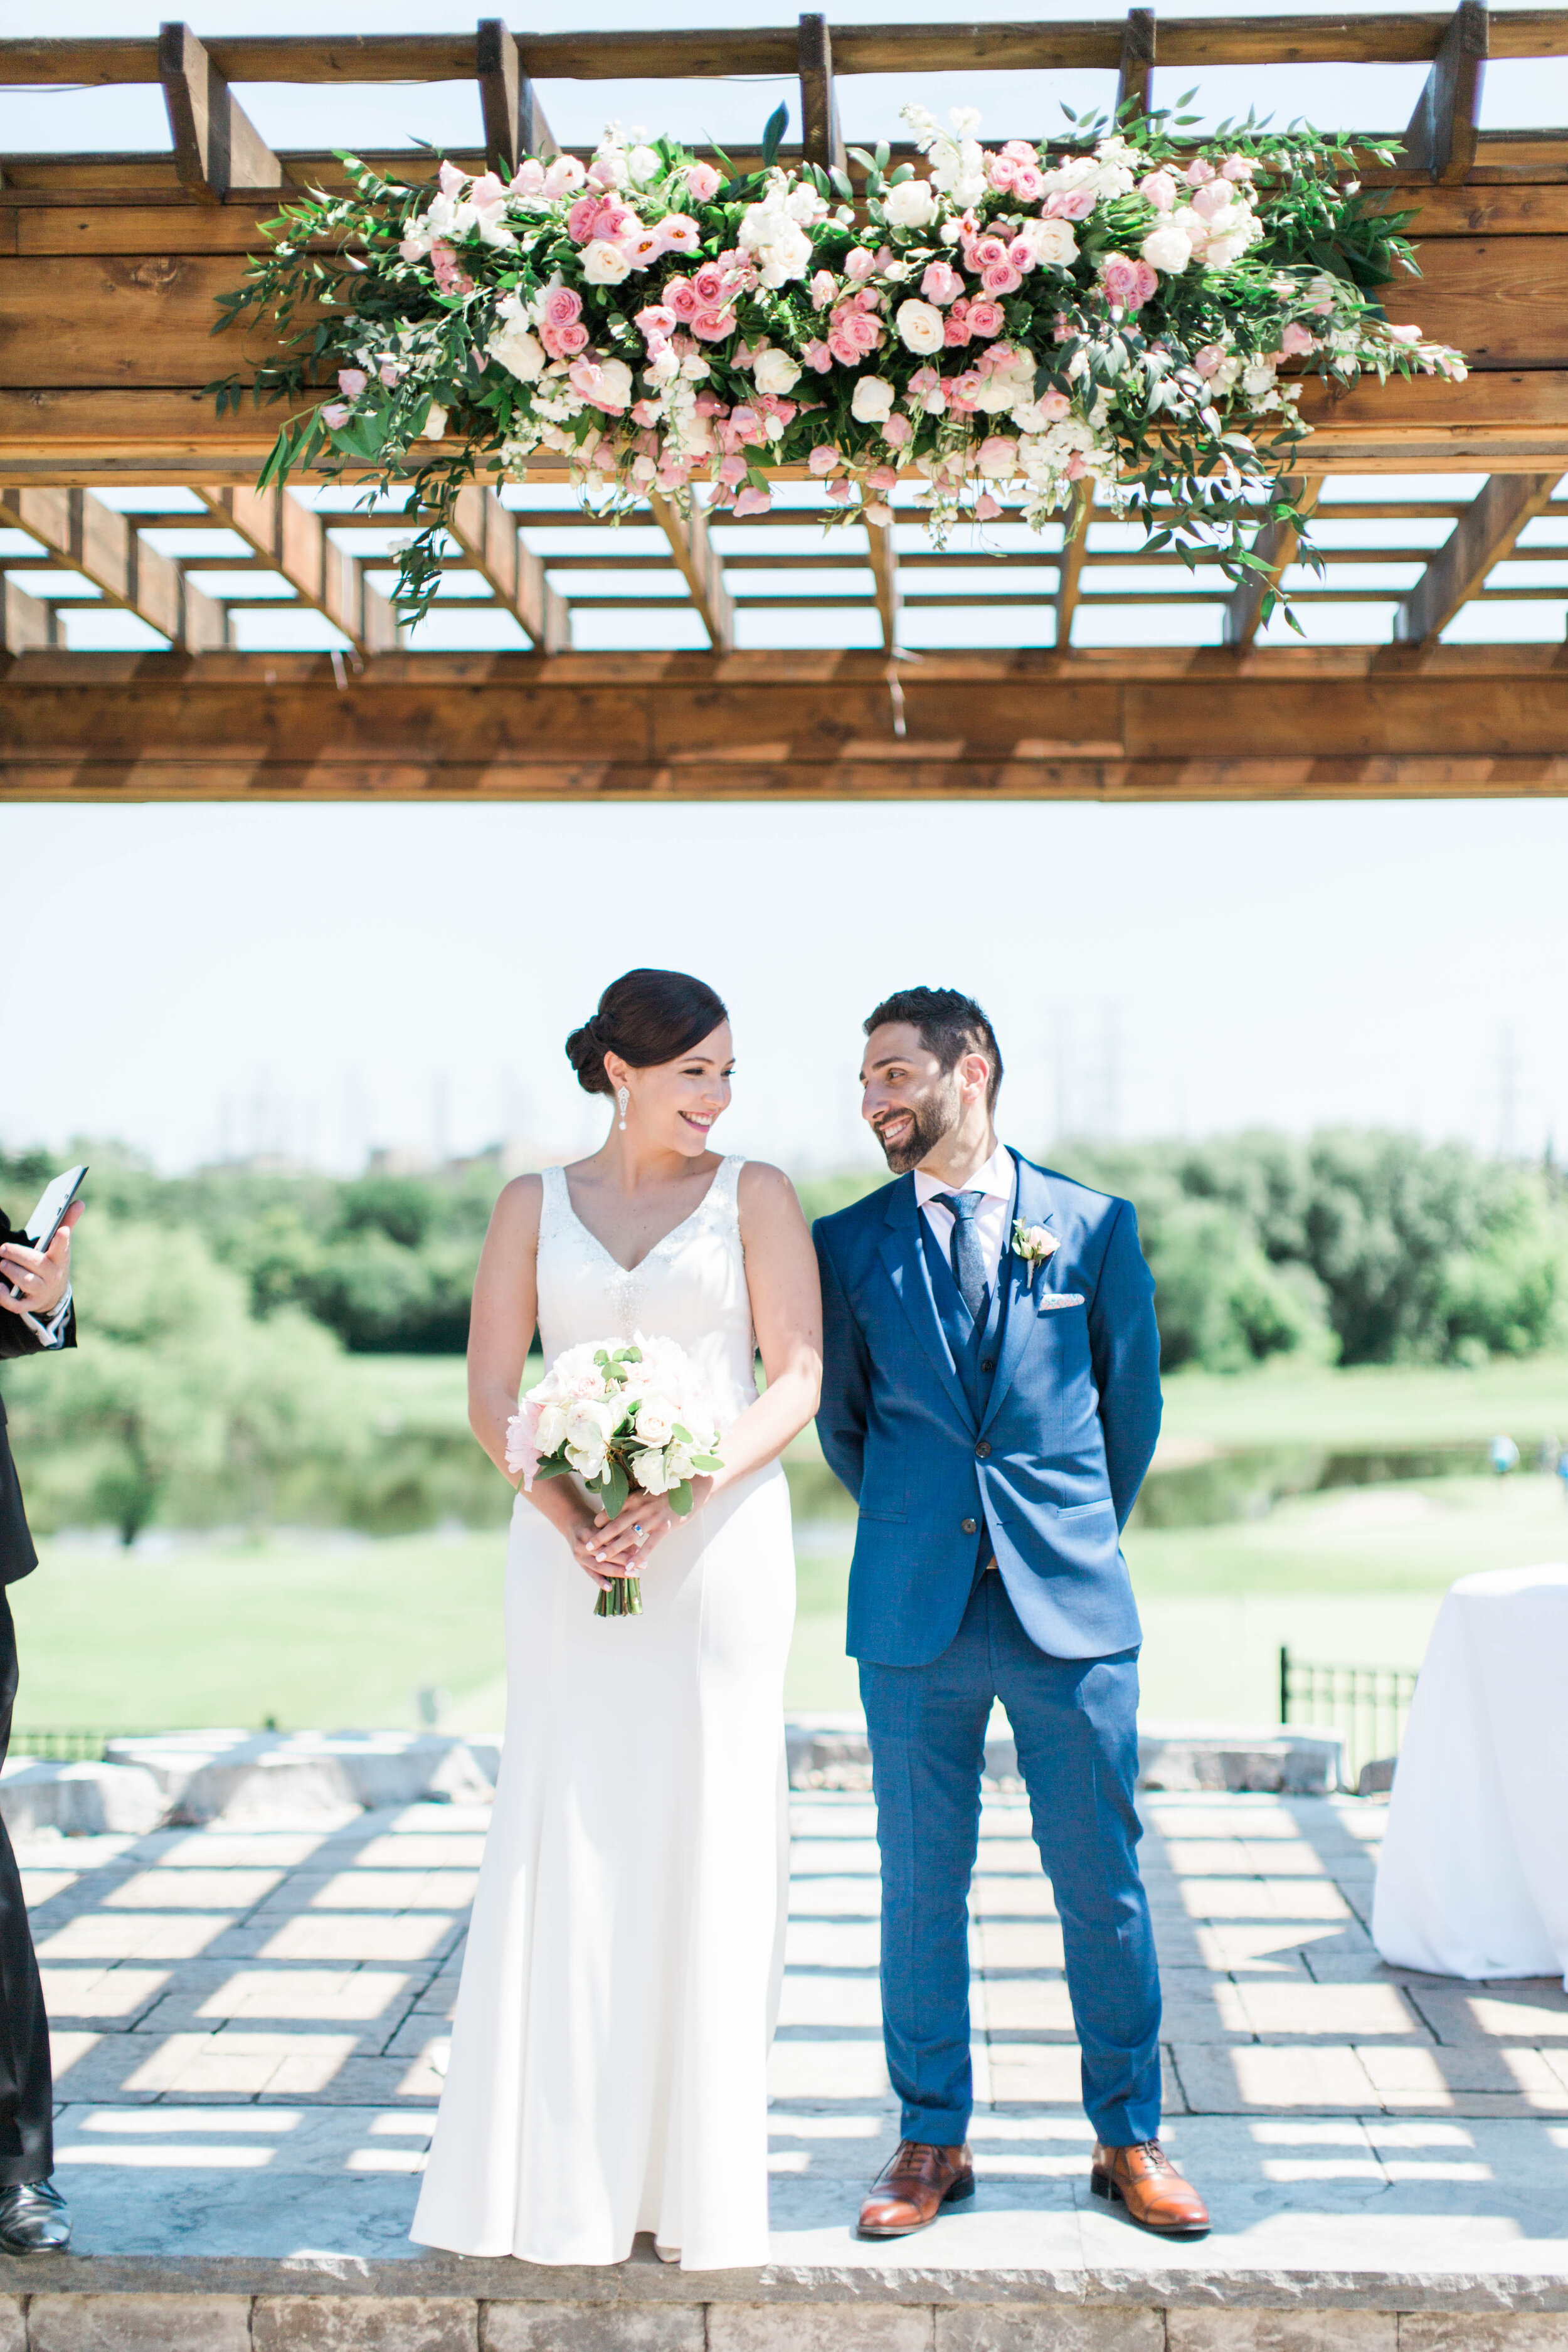 Bride and Groom in Ceremony - Trendy Modern Brunch Wedding - Historia Wedding and Event Planning